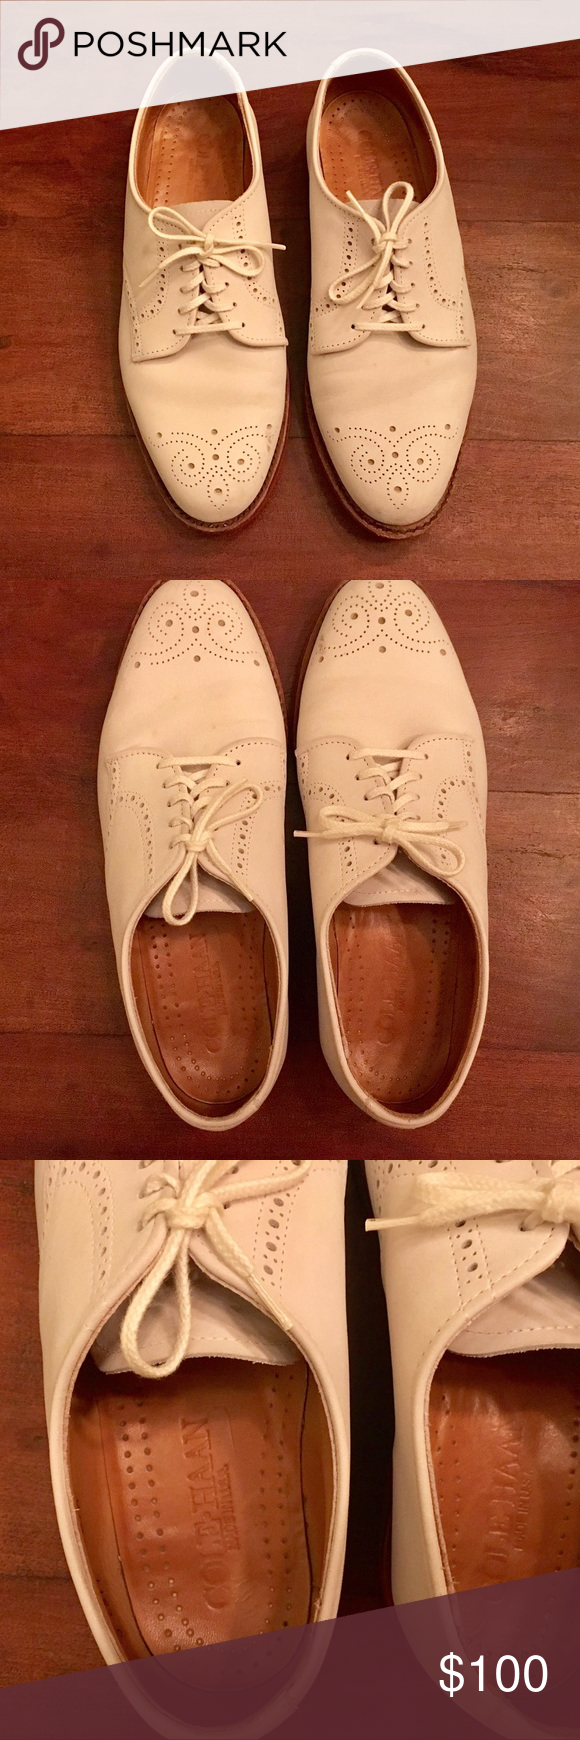 Cole Haan Wing Tip White Bucks | Cole